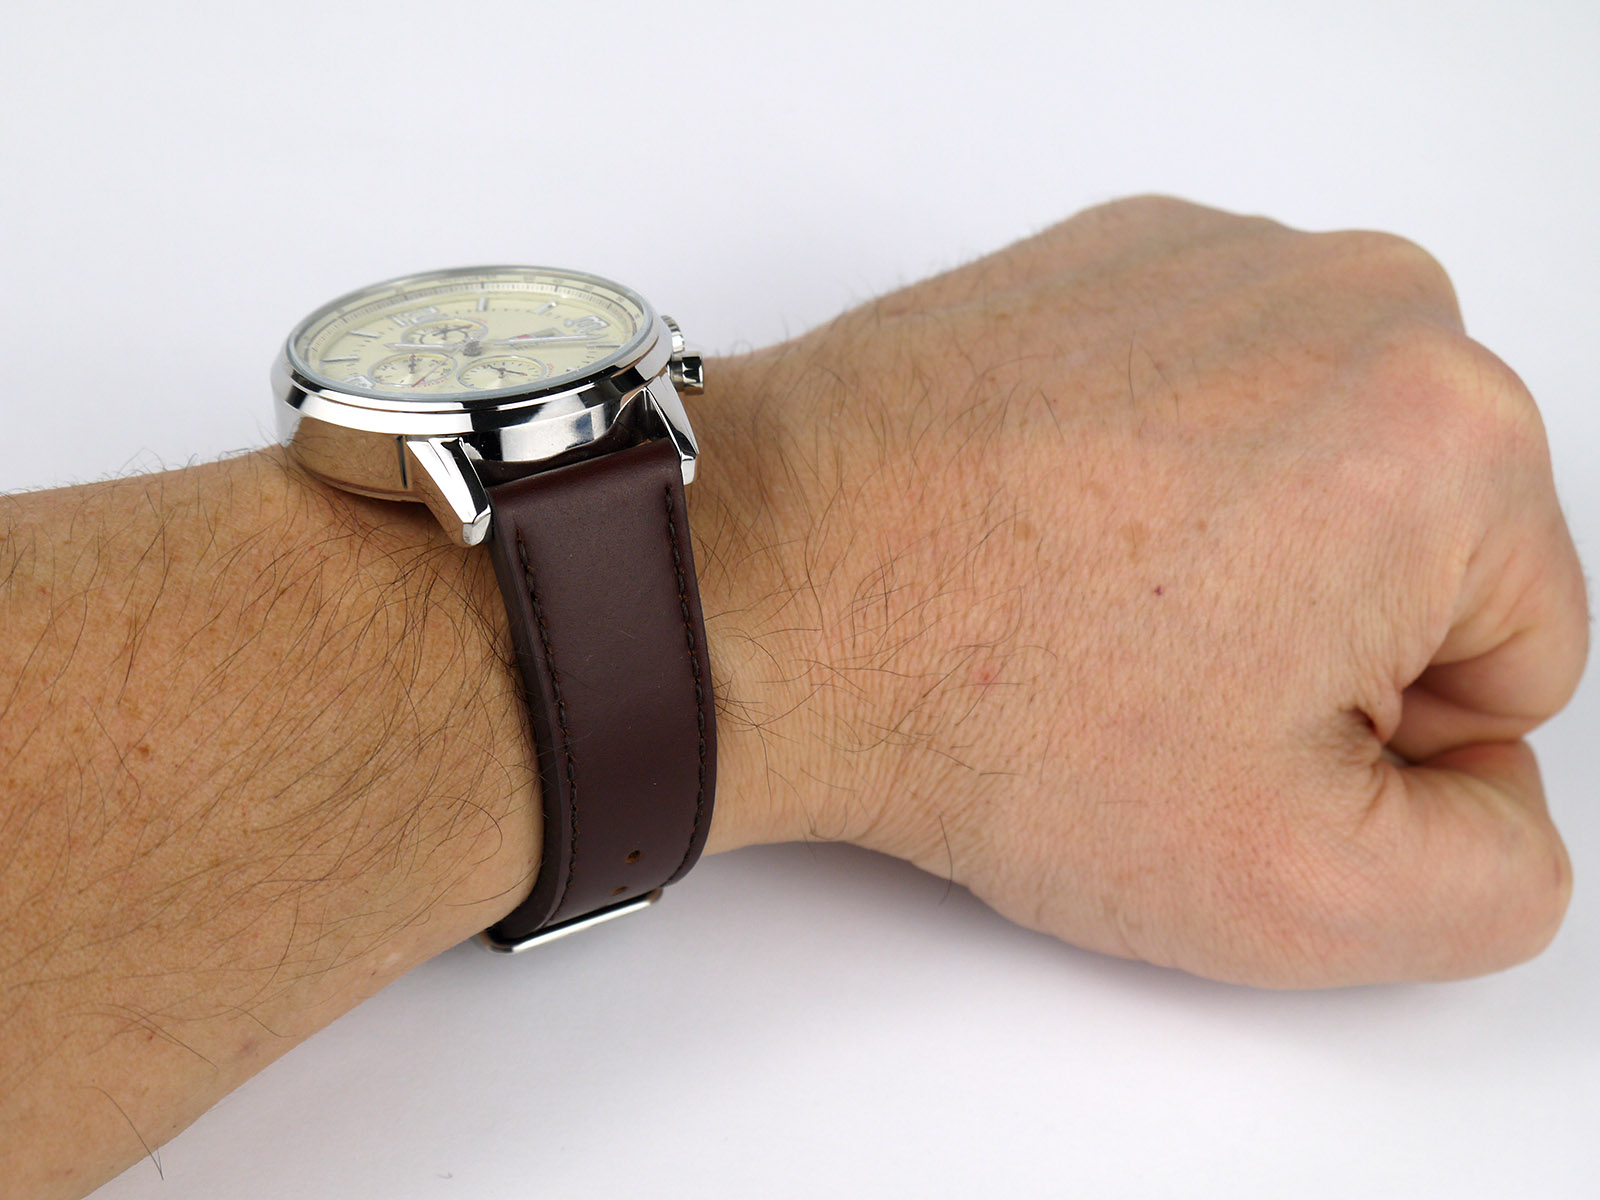 Watch Drew Blue Stainless Steel Case Silicone Strap Mens Nwt Warranty 1791062. Source · Rp. Source · Tommy Hilfiger 1710337 Stainless Steel Brown Leather ...